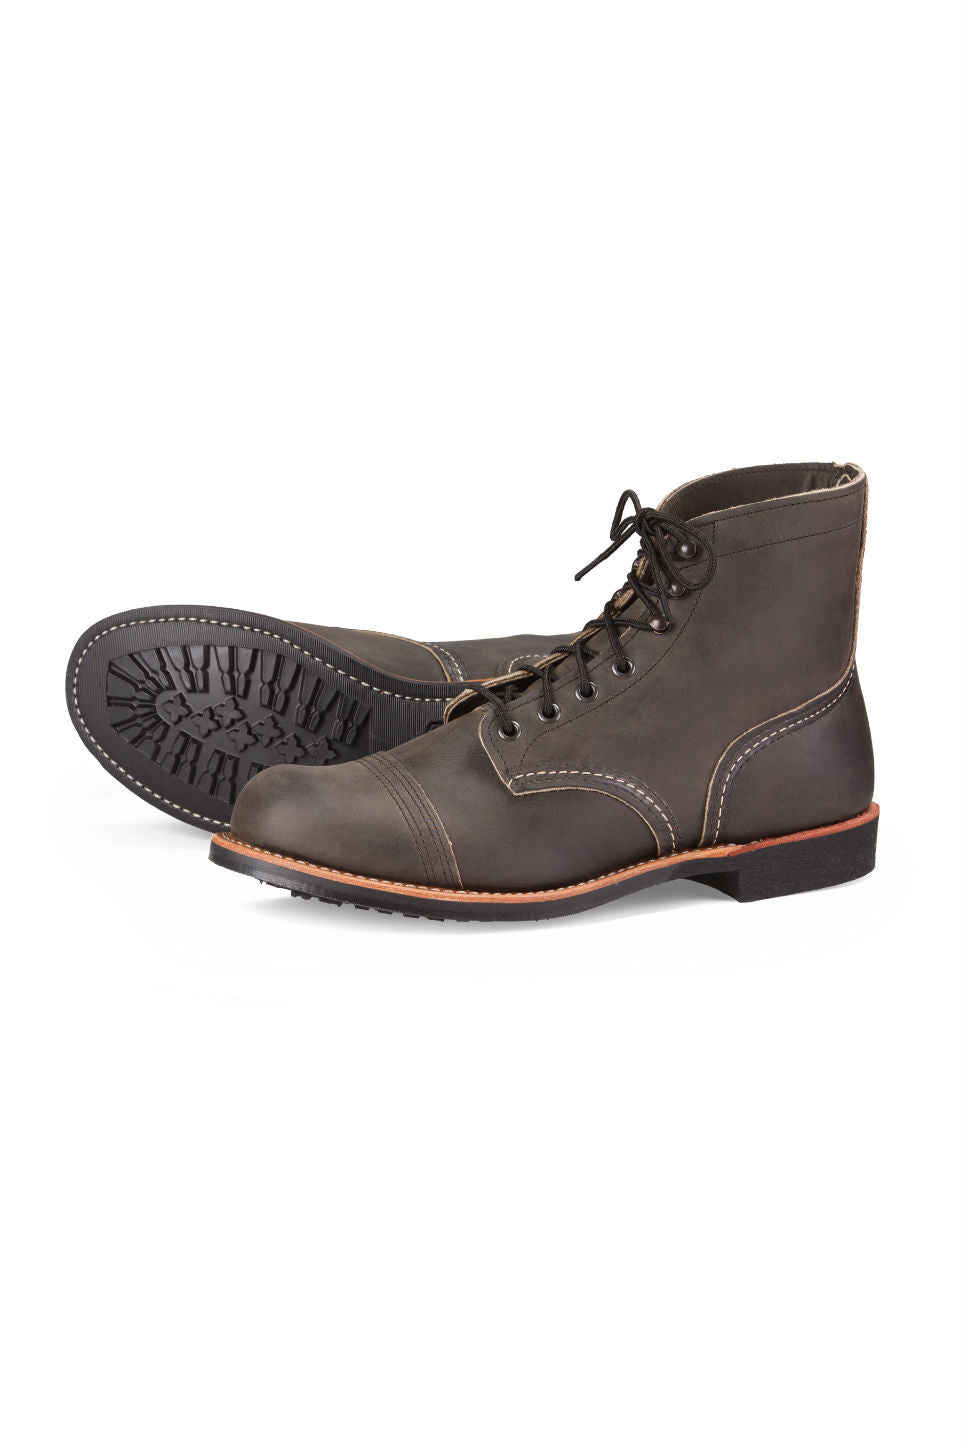 Red Wing Heritage - Iron Ranger - Charcoal RT